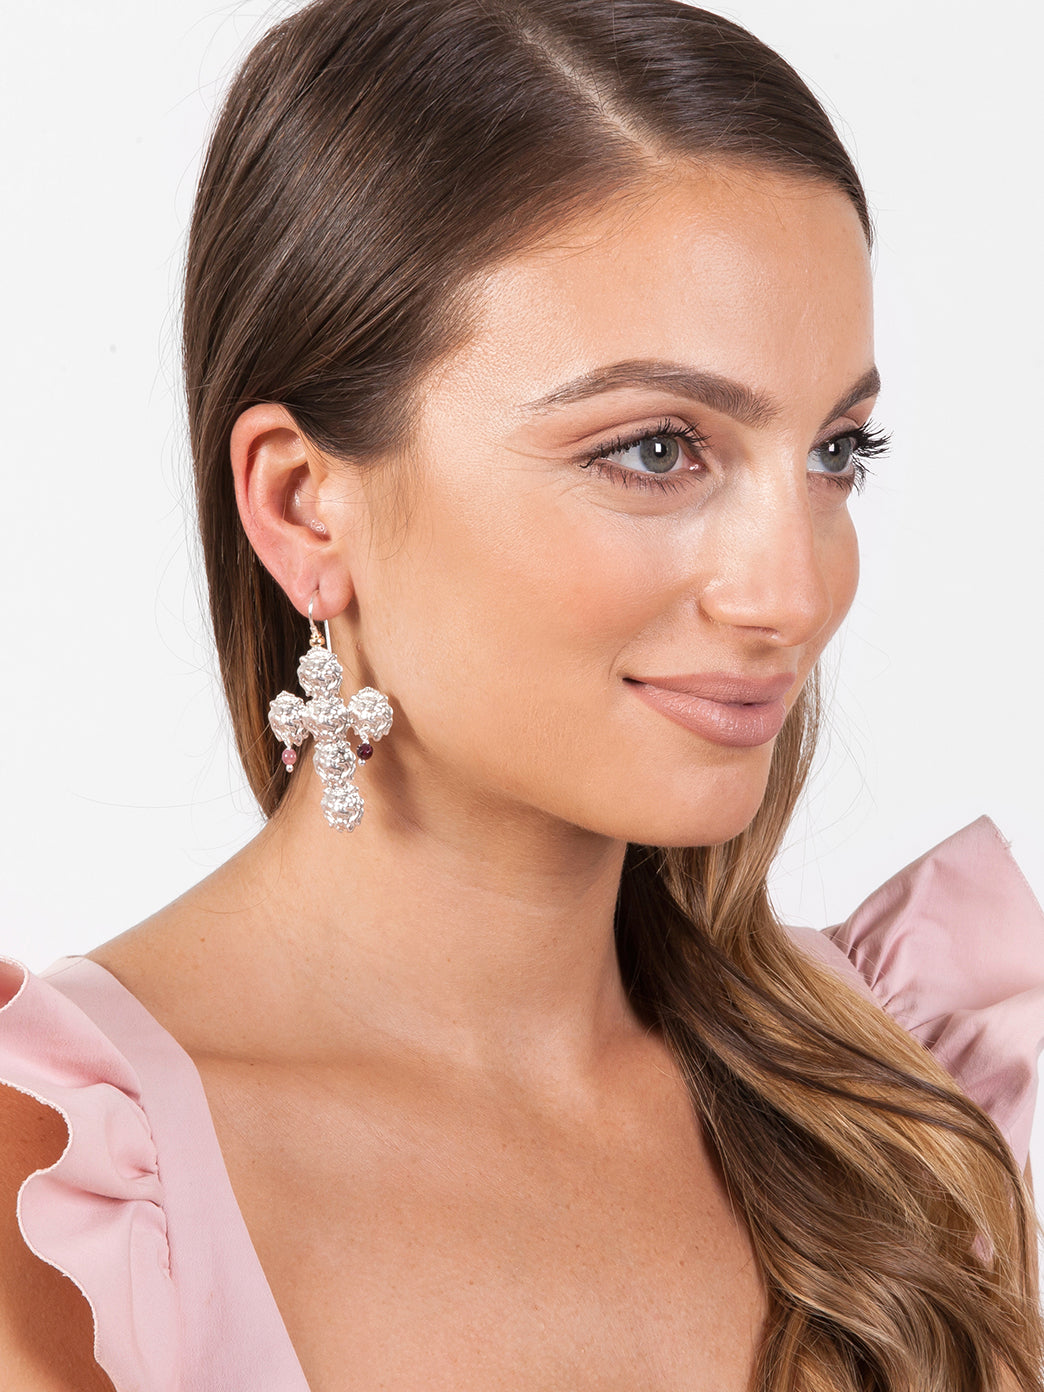 Fiorina Jewellery Trevi Cross Earrings Model